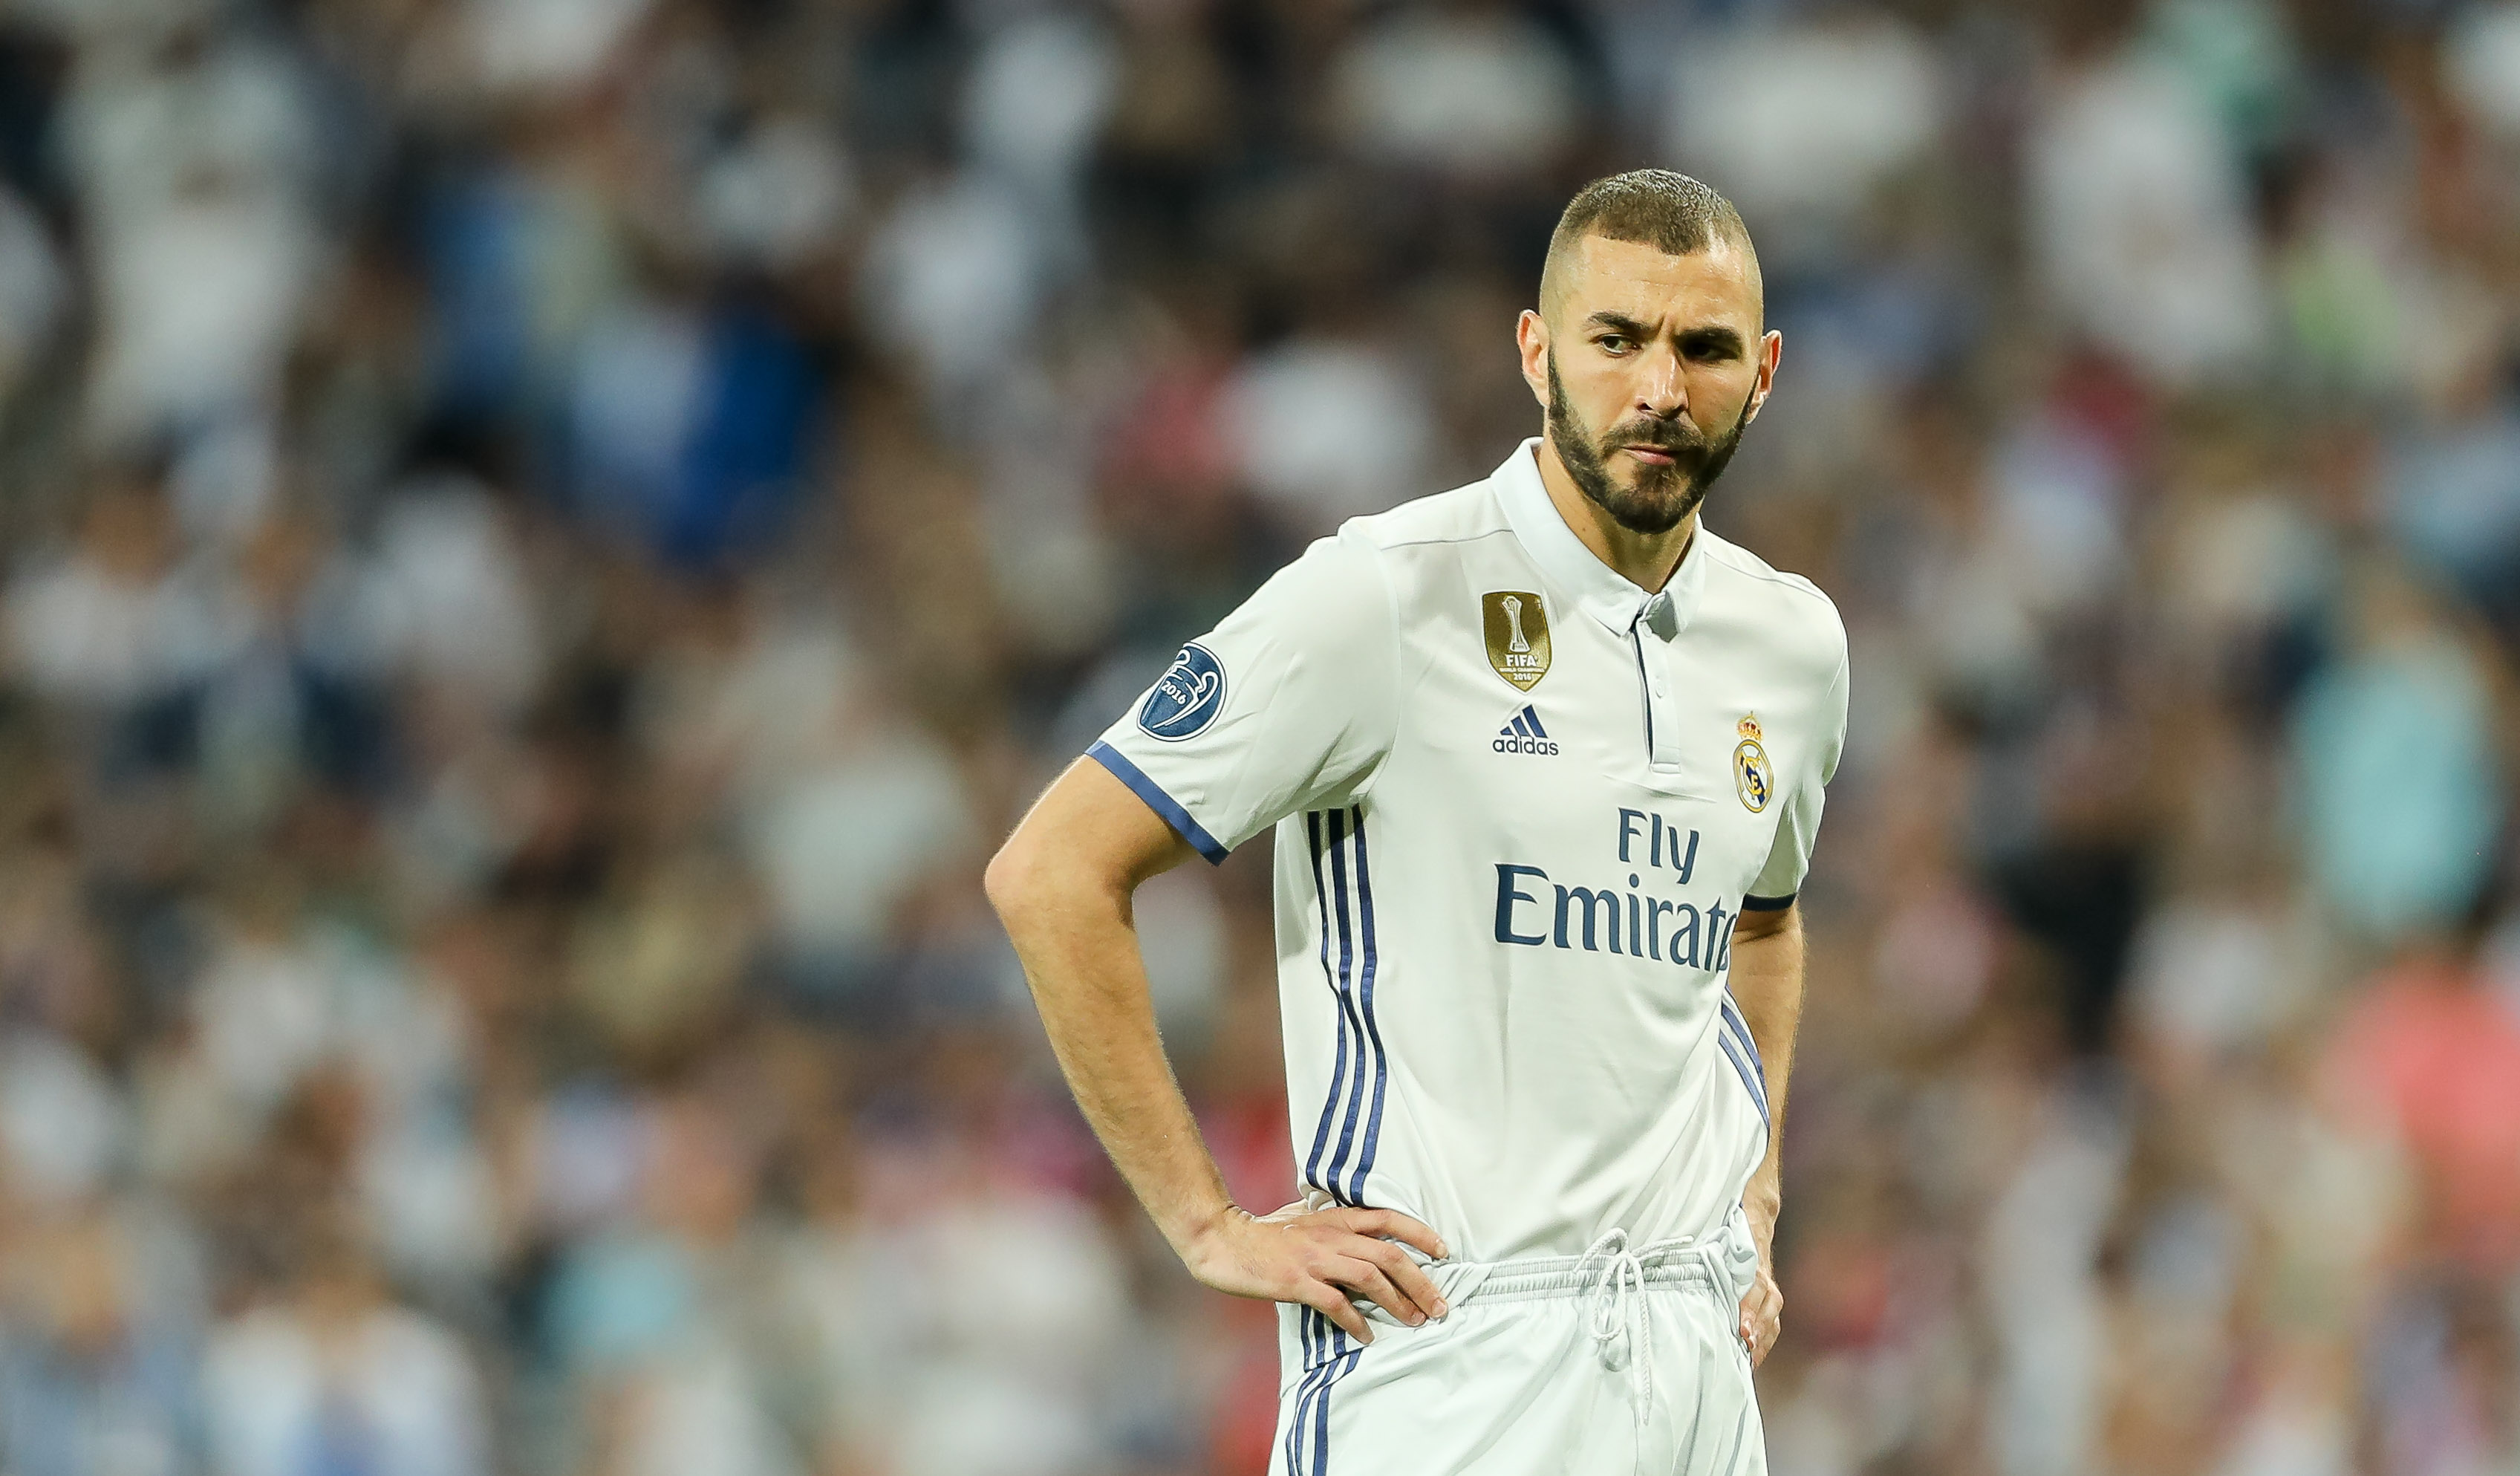 Didier Deschamps calls Karim Benzema 'pathetic' after liking Instagram picture